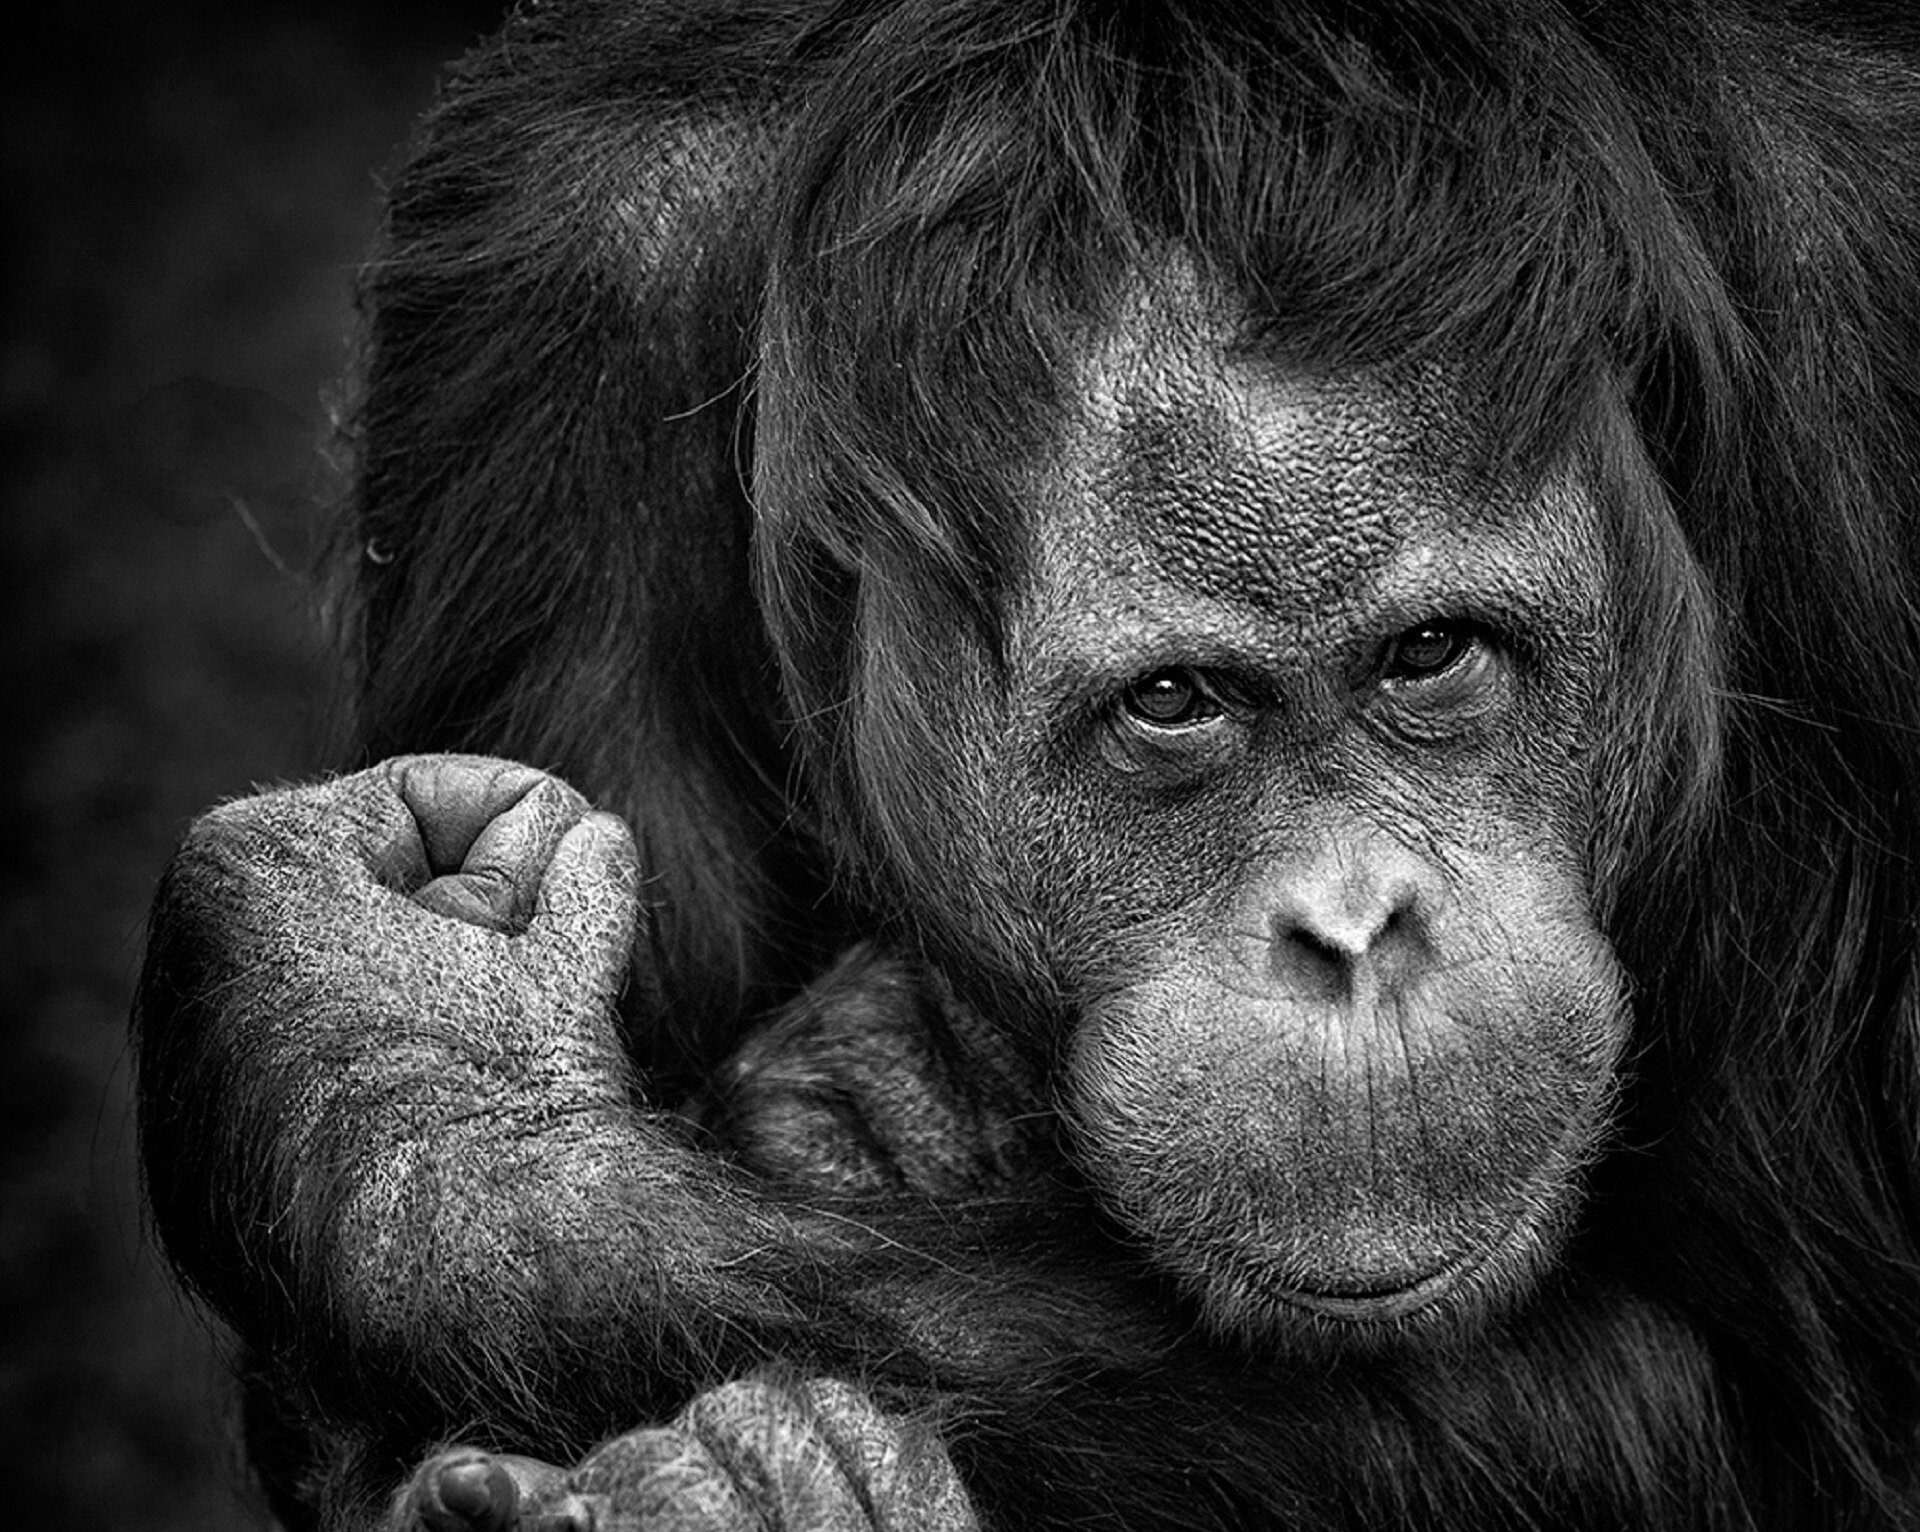 Chimp communication gestures found to follow human linguistics rules